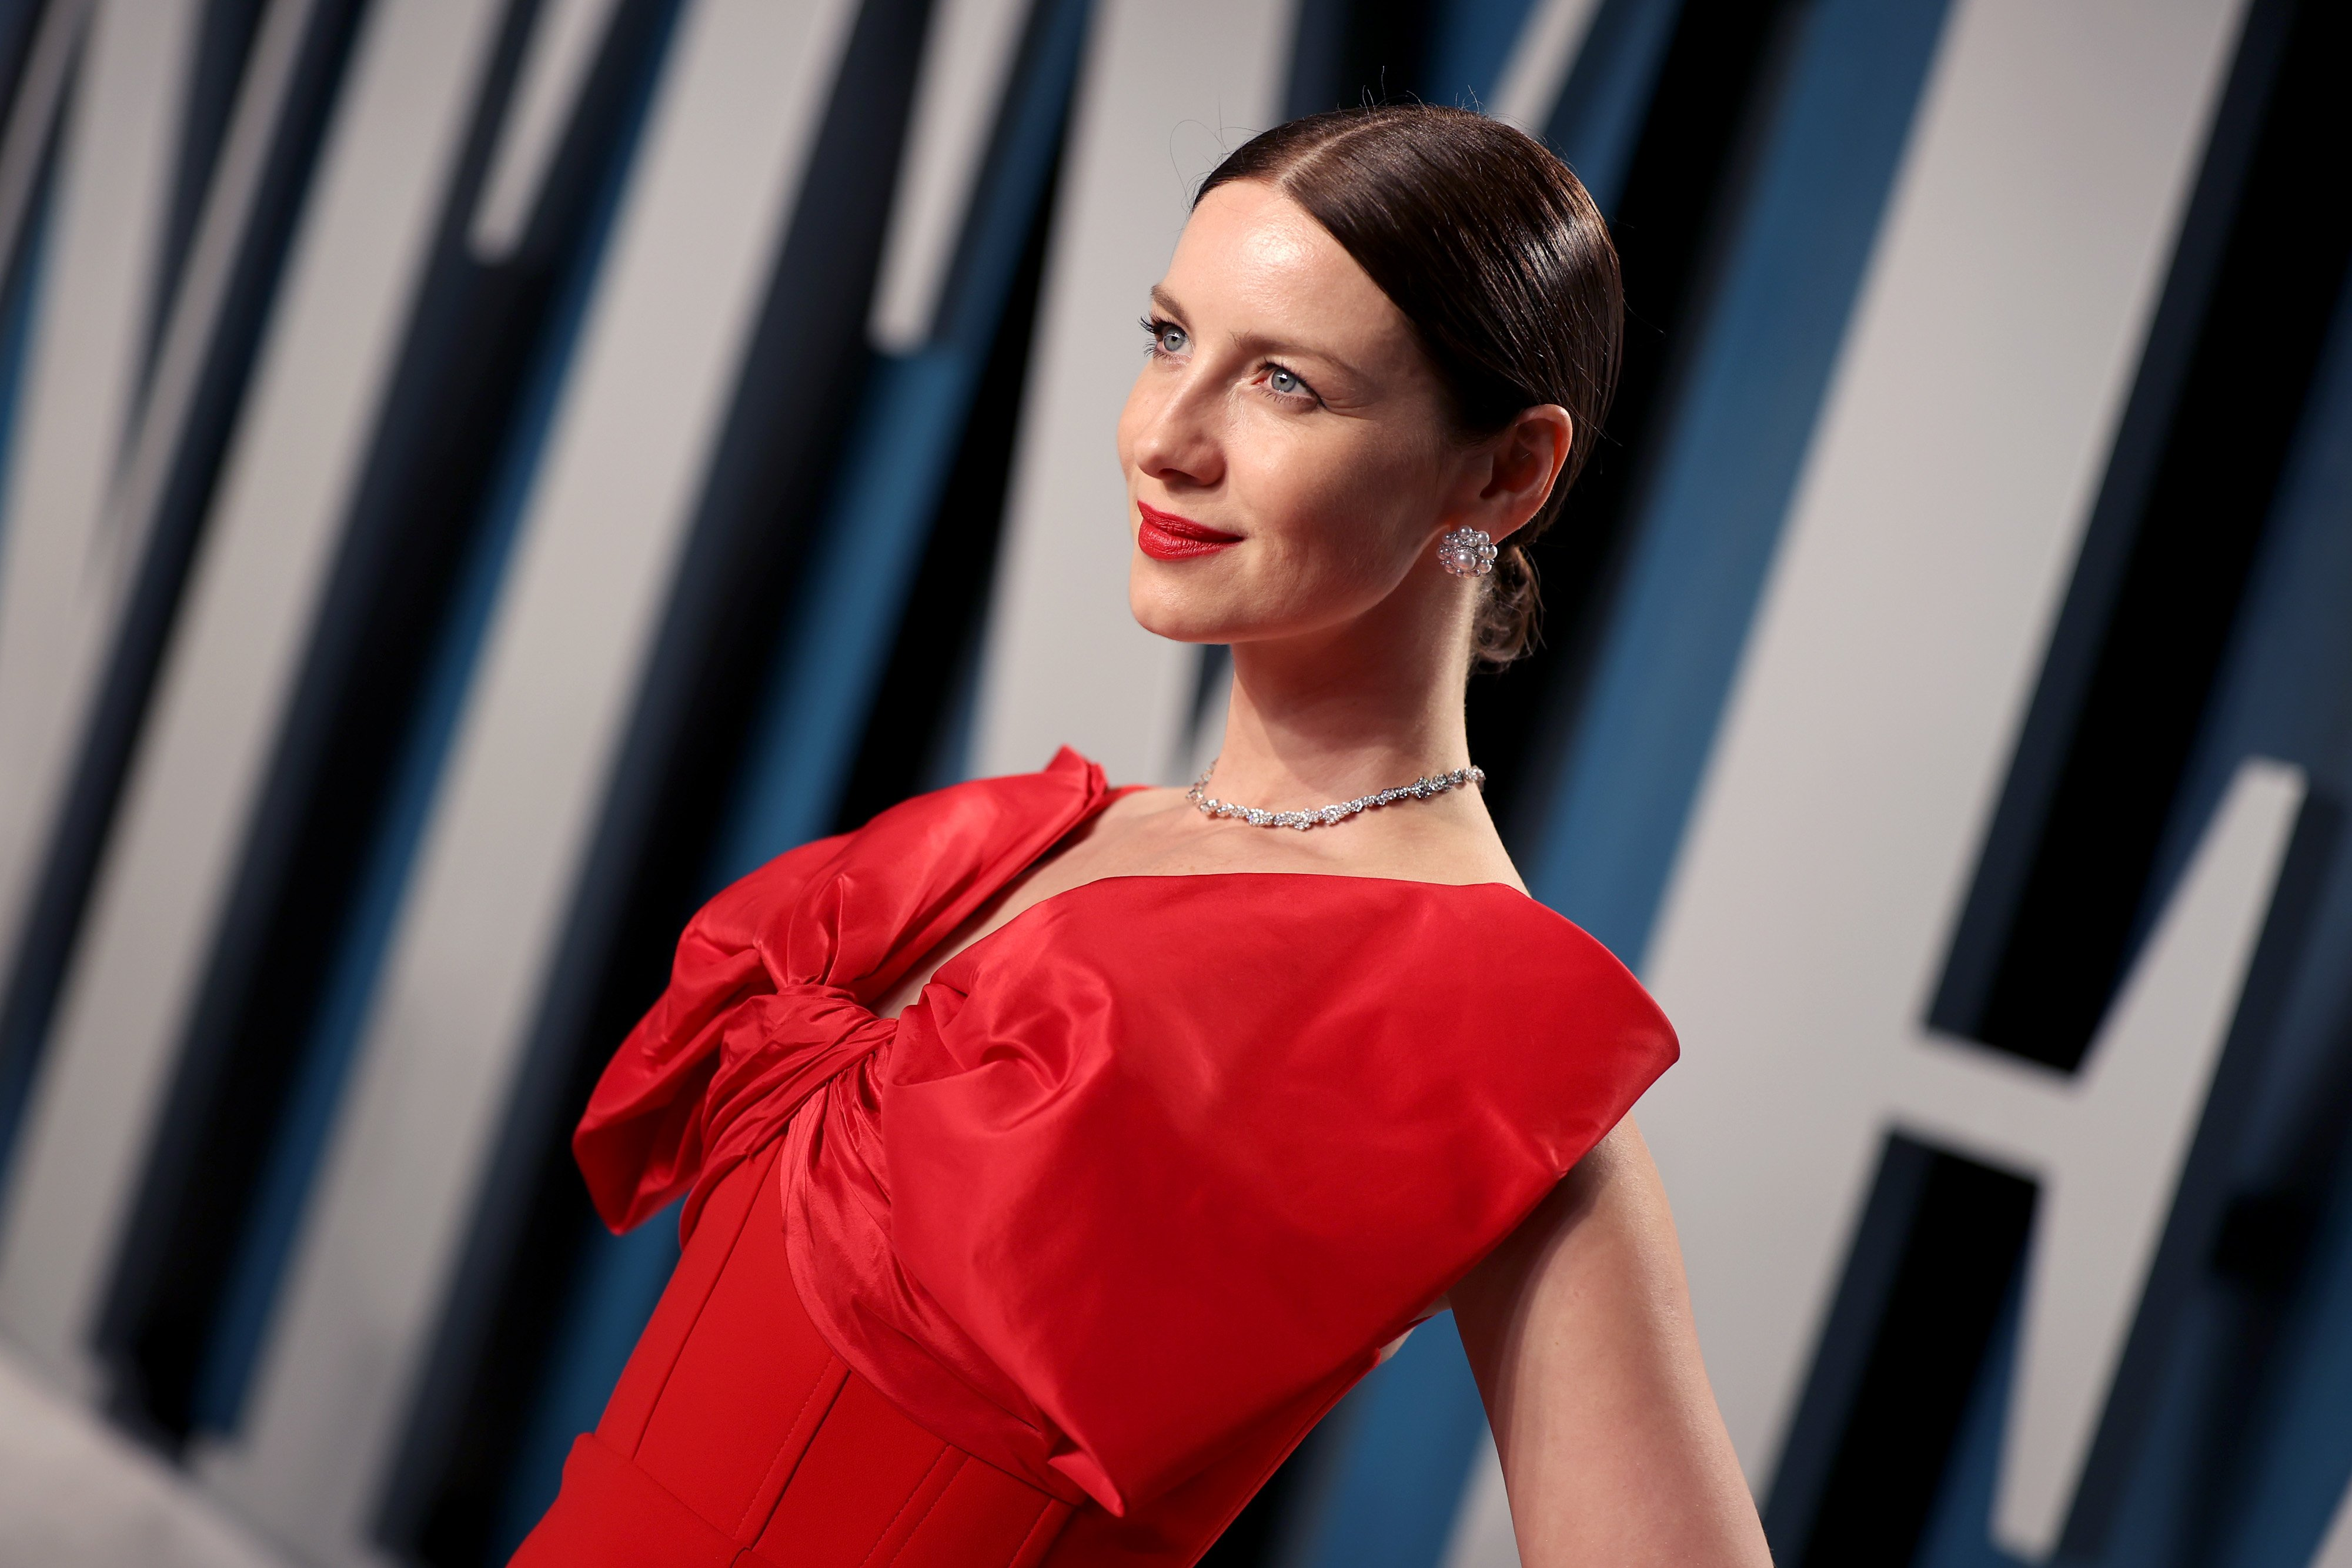 Caitriona Balfe attends the 2020 Vanity Fair Oscar Party / Getty Images